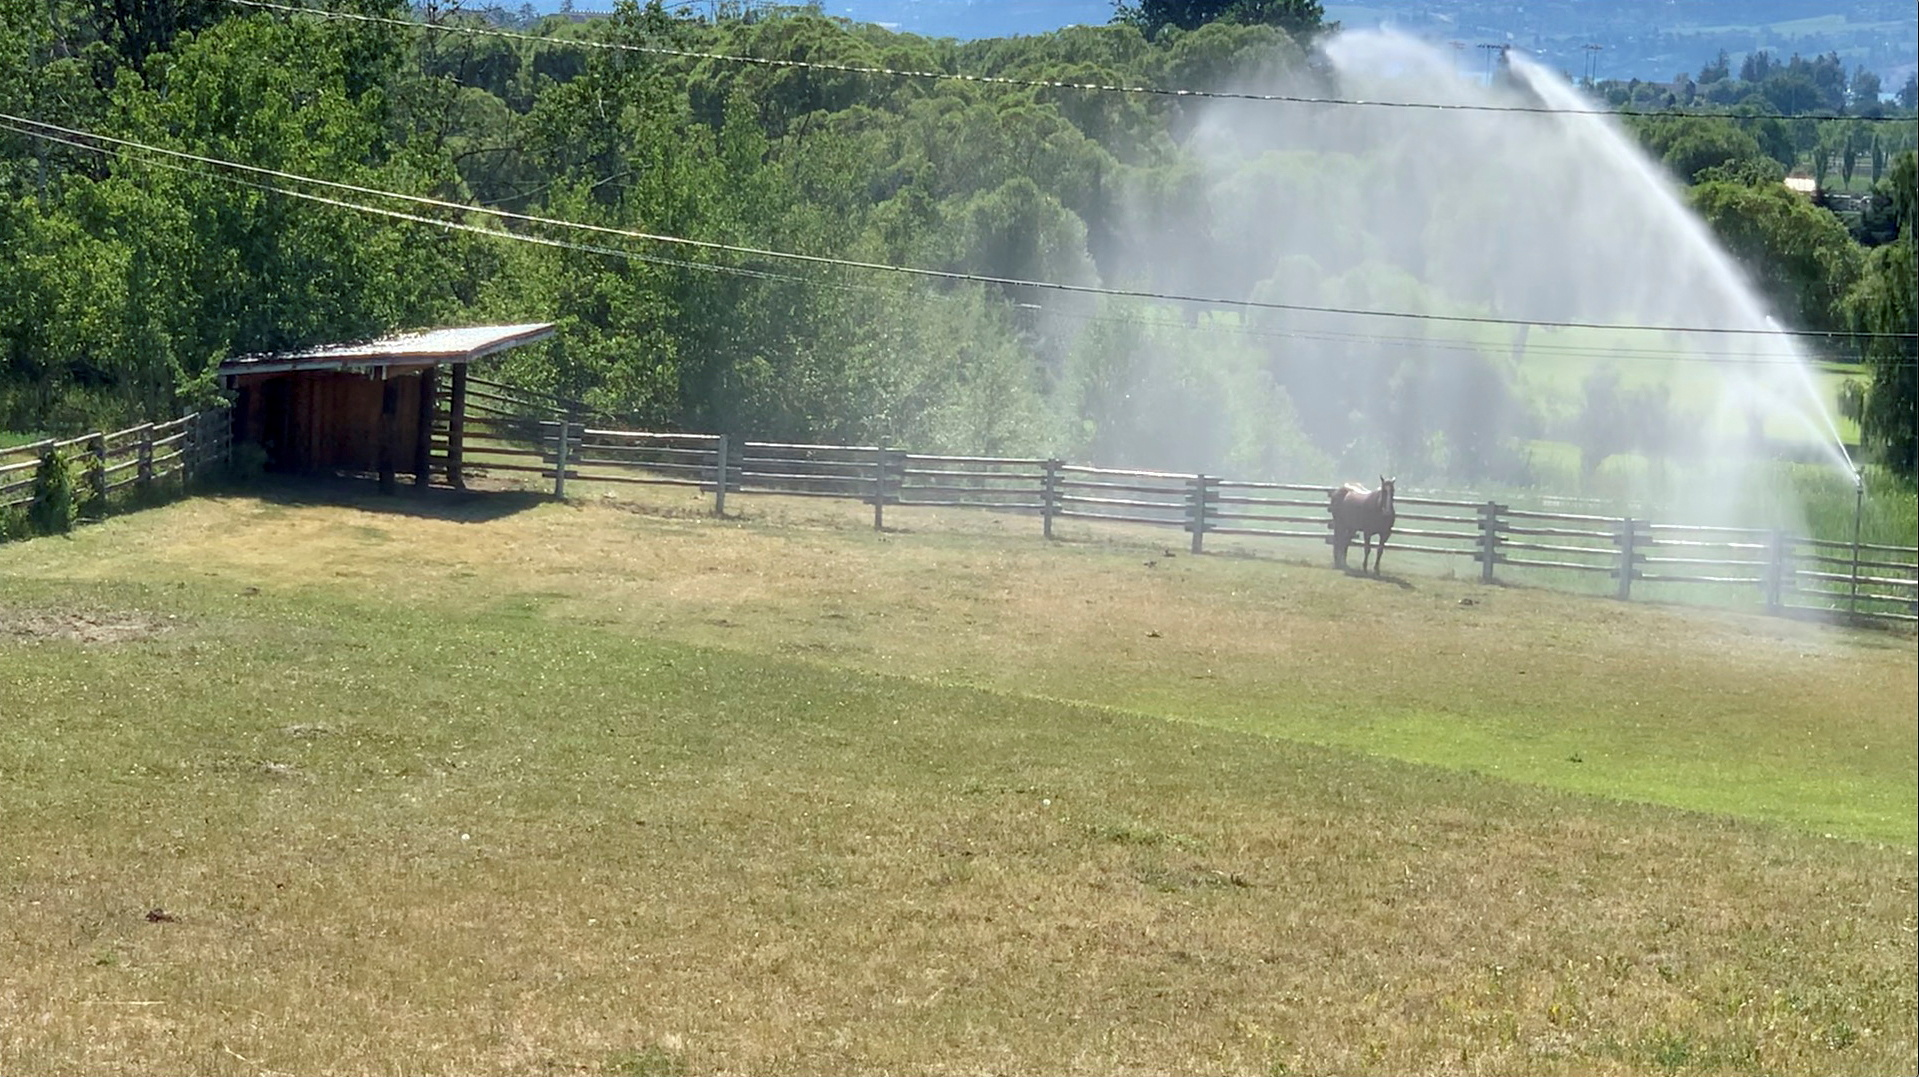 Sprinklers spray water on a horse amid a heatwave in Kelowna, British Columbia, Canada, June 27, 2021, in this still image from video obtained via social media. Video taken June 27, 2021. TWITTER @CANADIANBYLUCK via REUTERS/File Photo